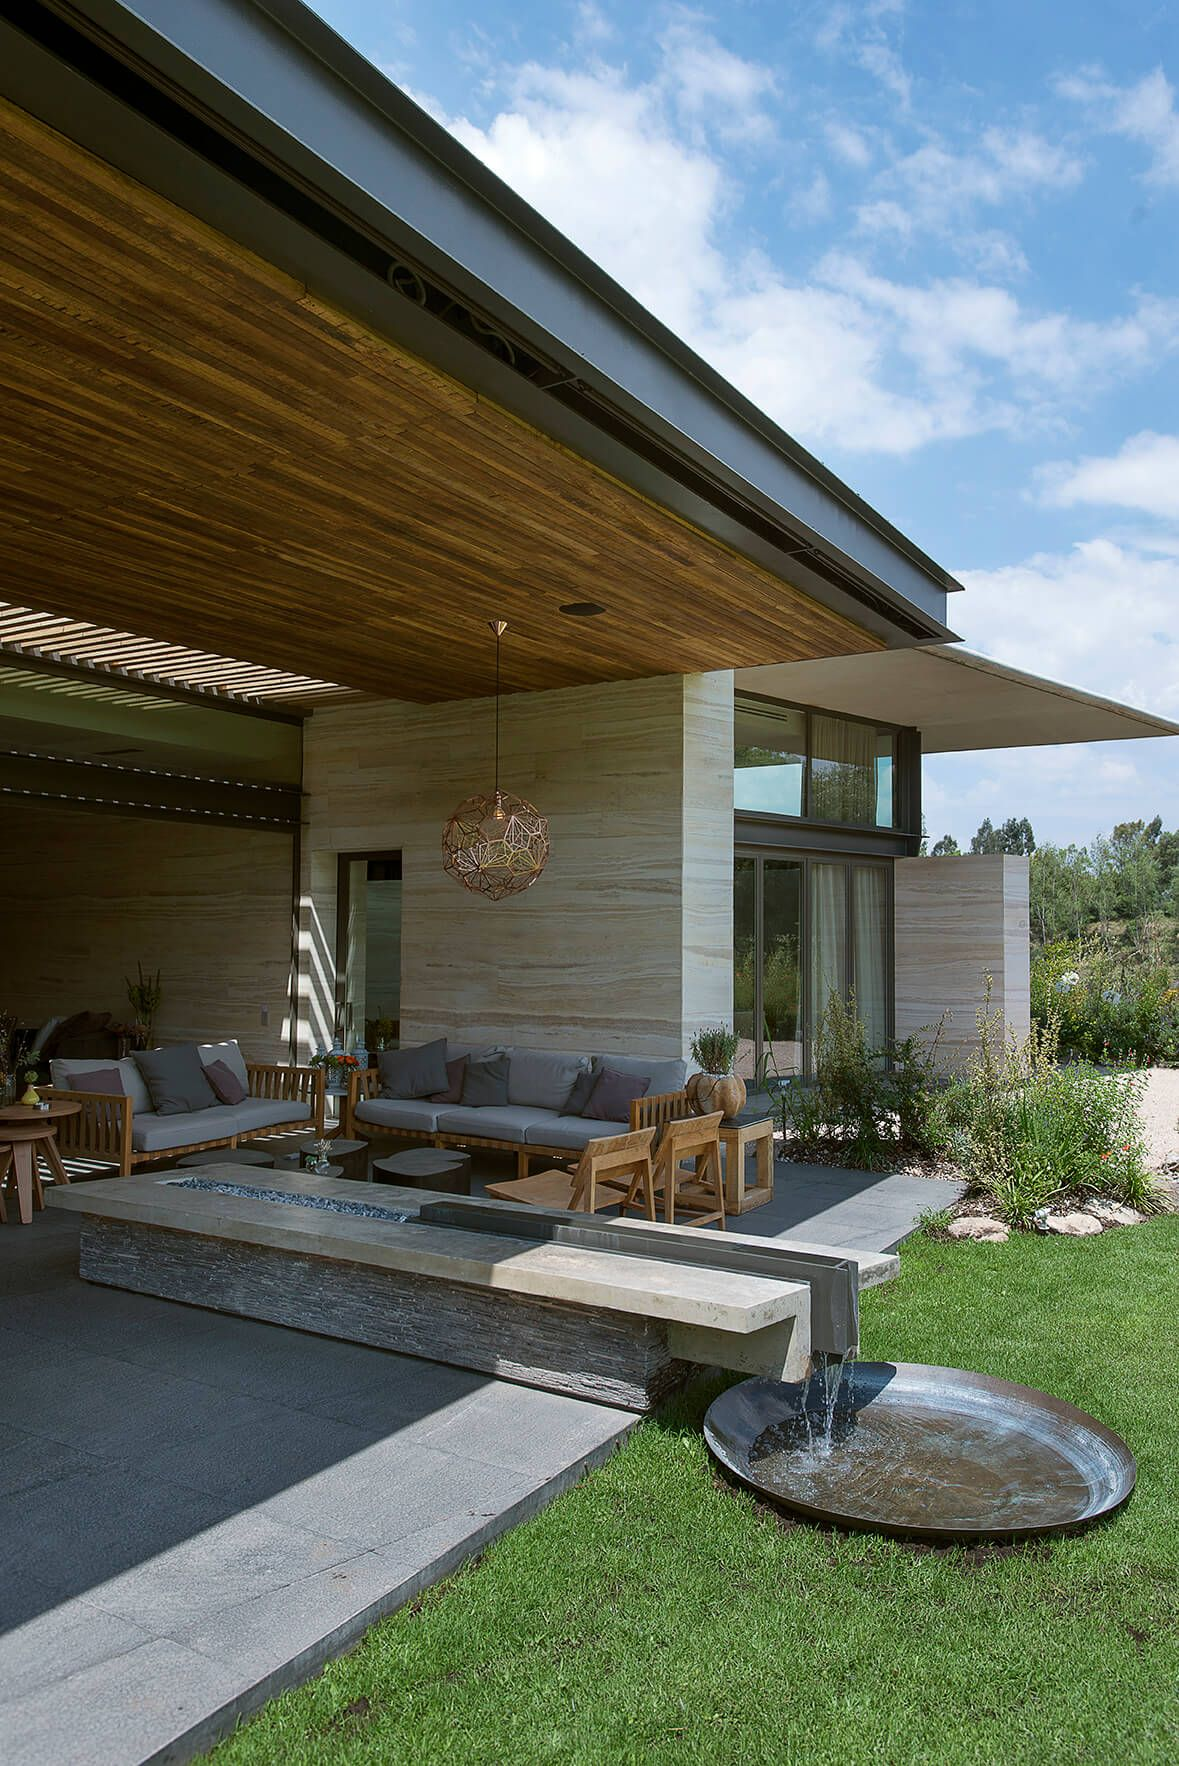 AFS Lomas Country by Vieyra Arquitectos   House   Pinterest ...